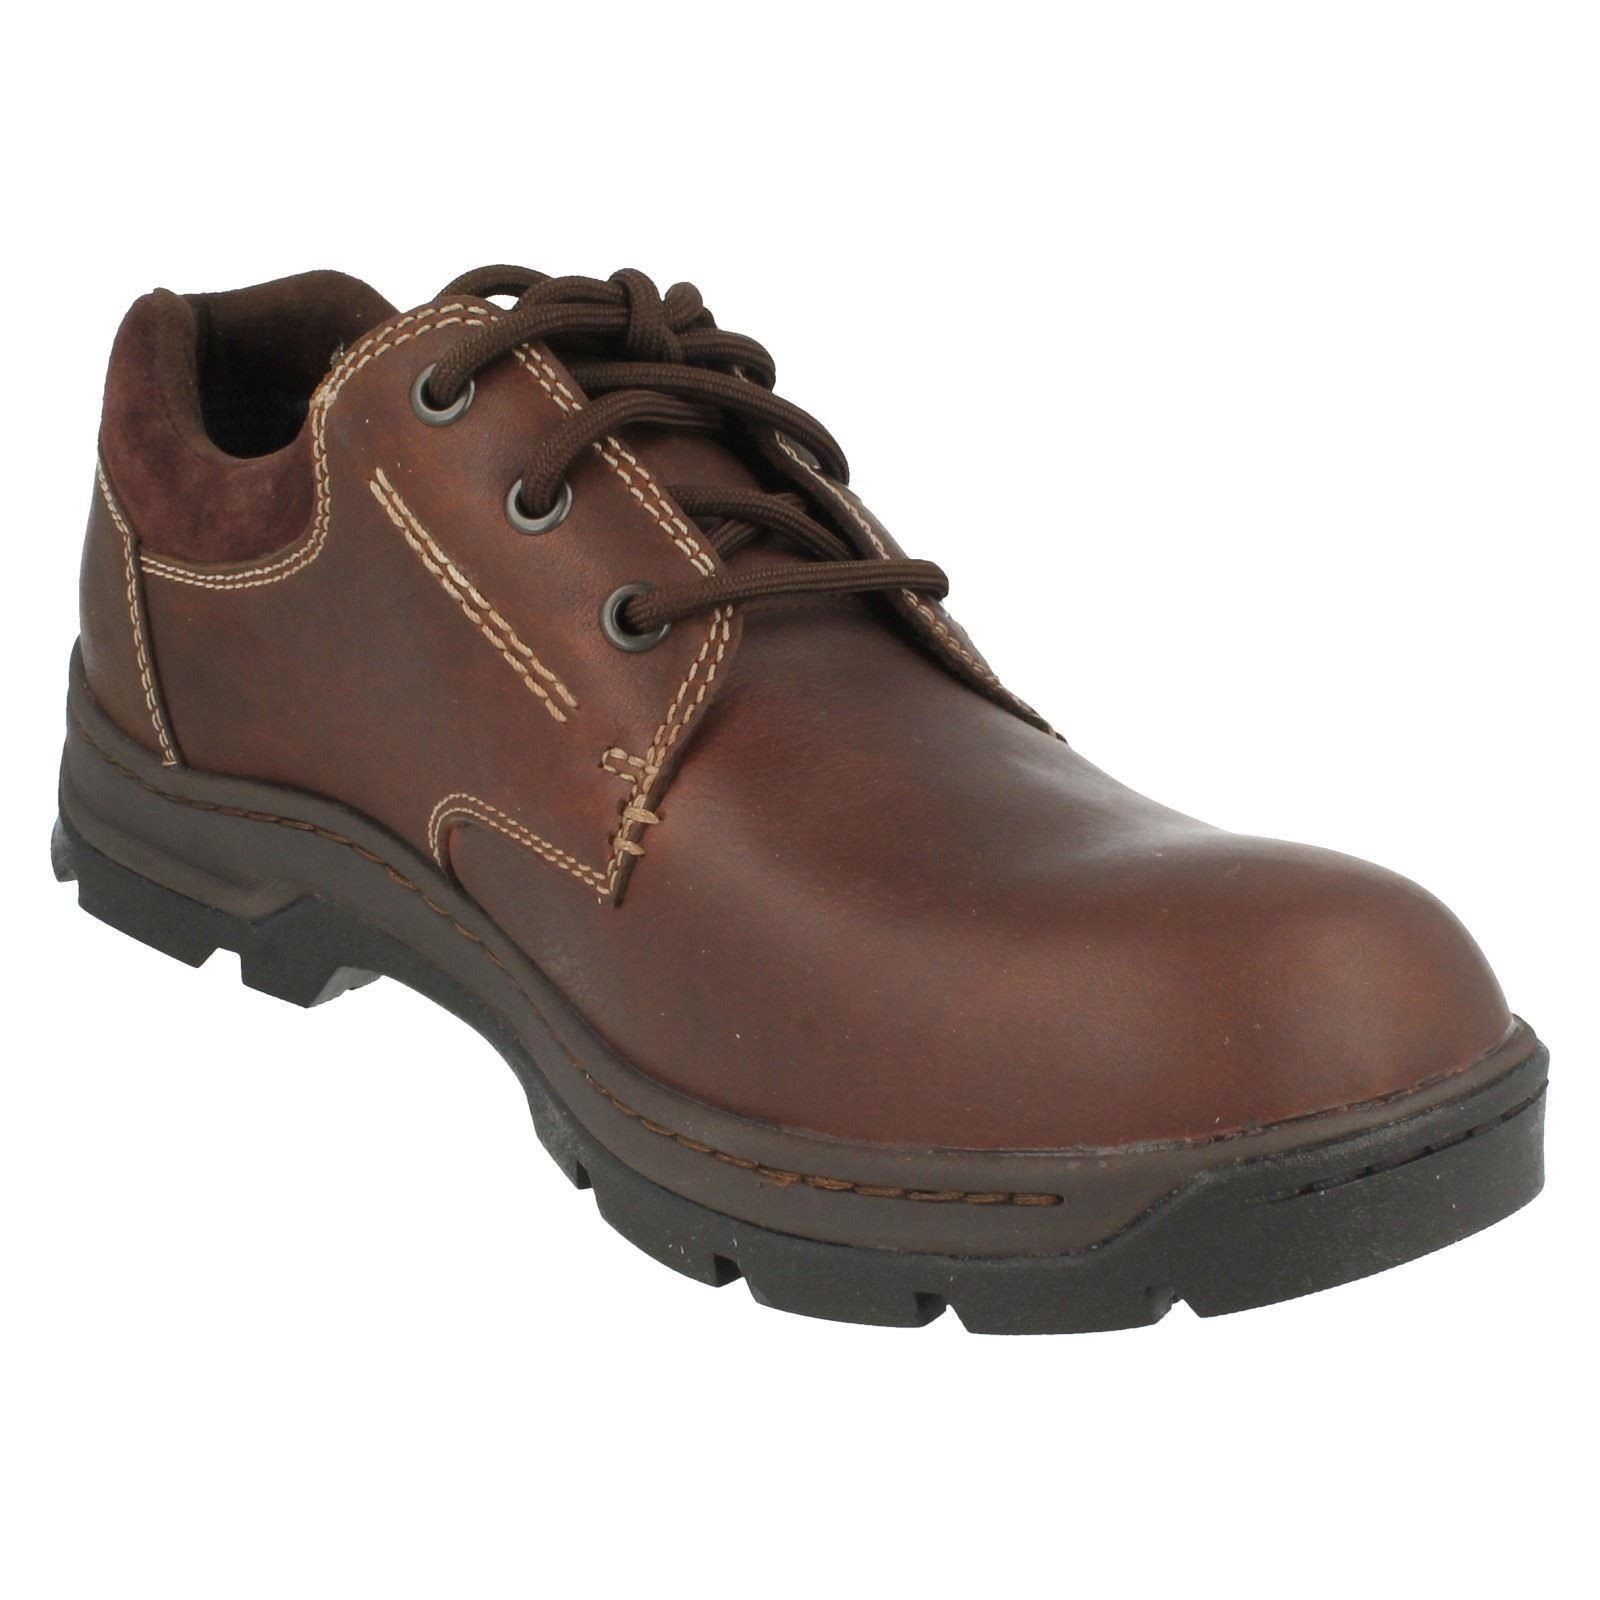 Clarks Men S Wide Fitting Gore Tex Shoes